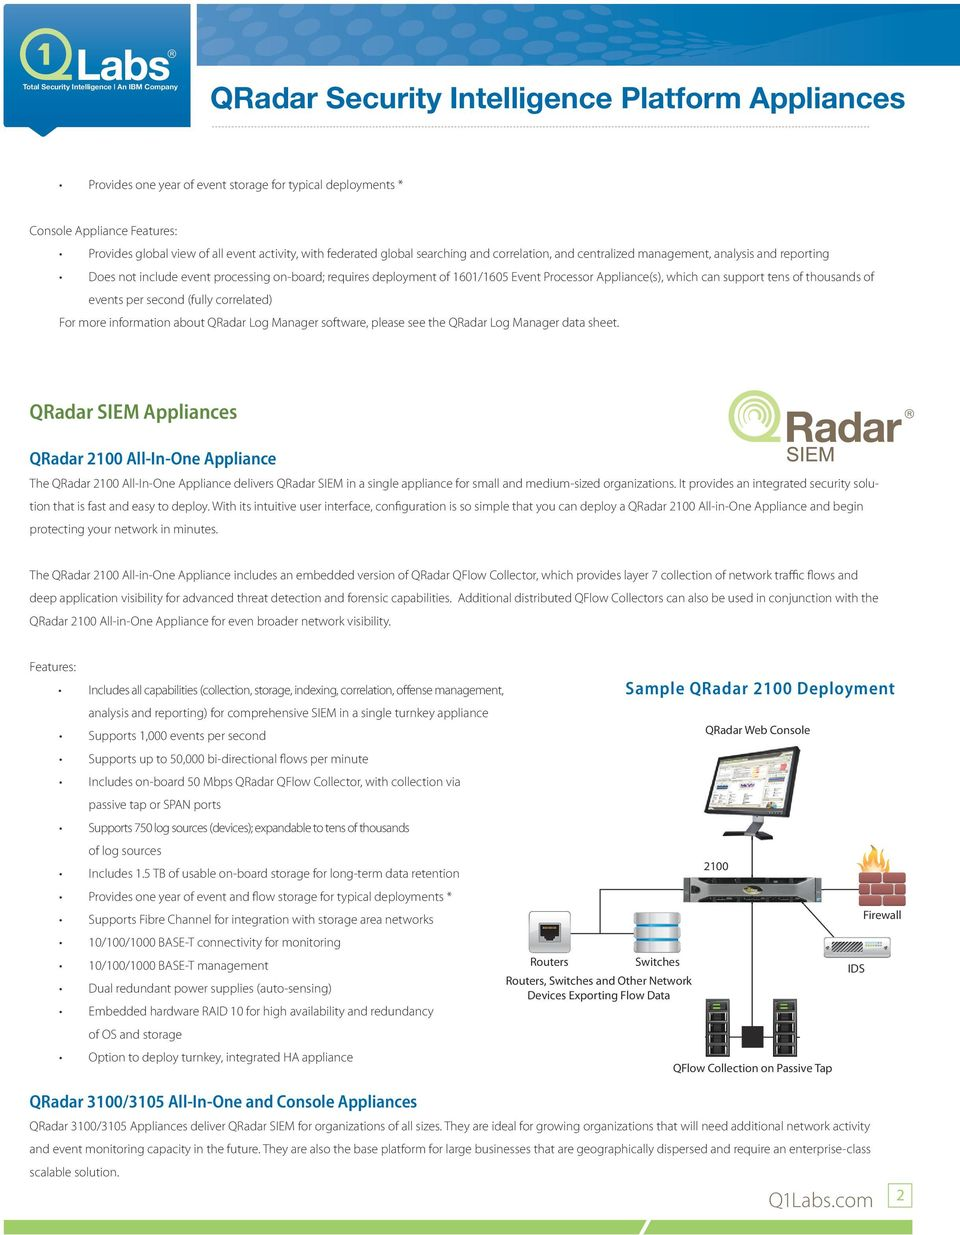 (fully correlated) For more information about QRadar Log Manager software, please see the QRadar Log Manager data sheet.